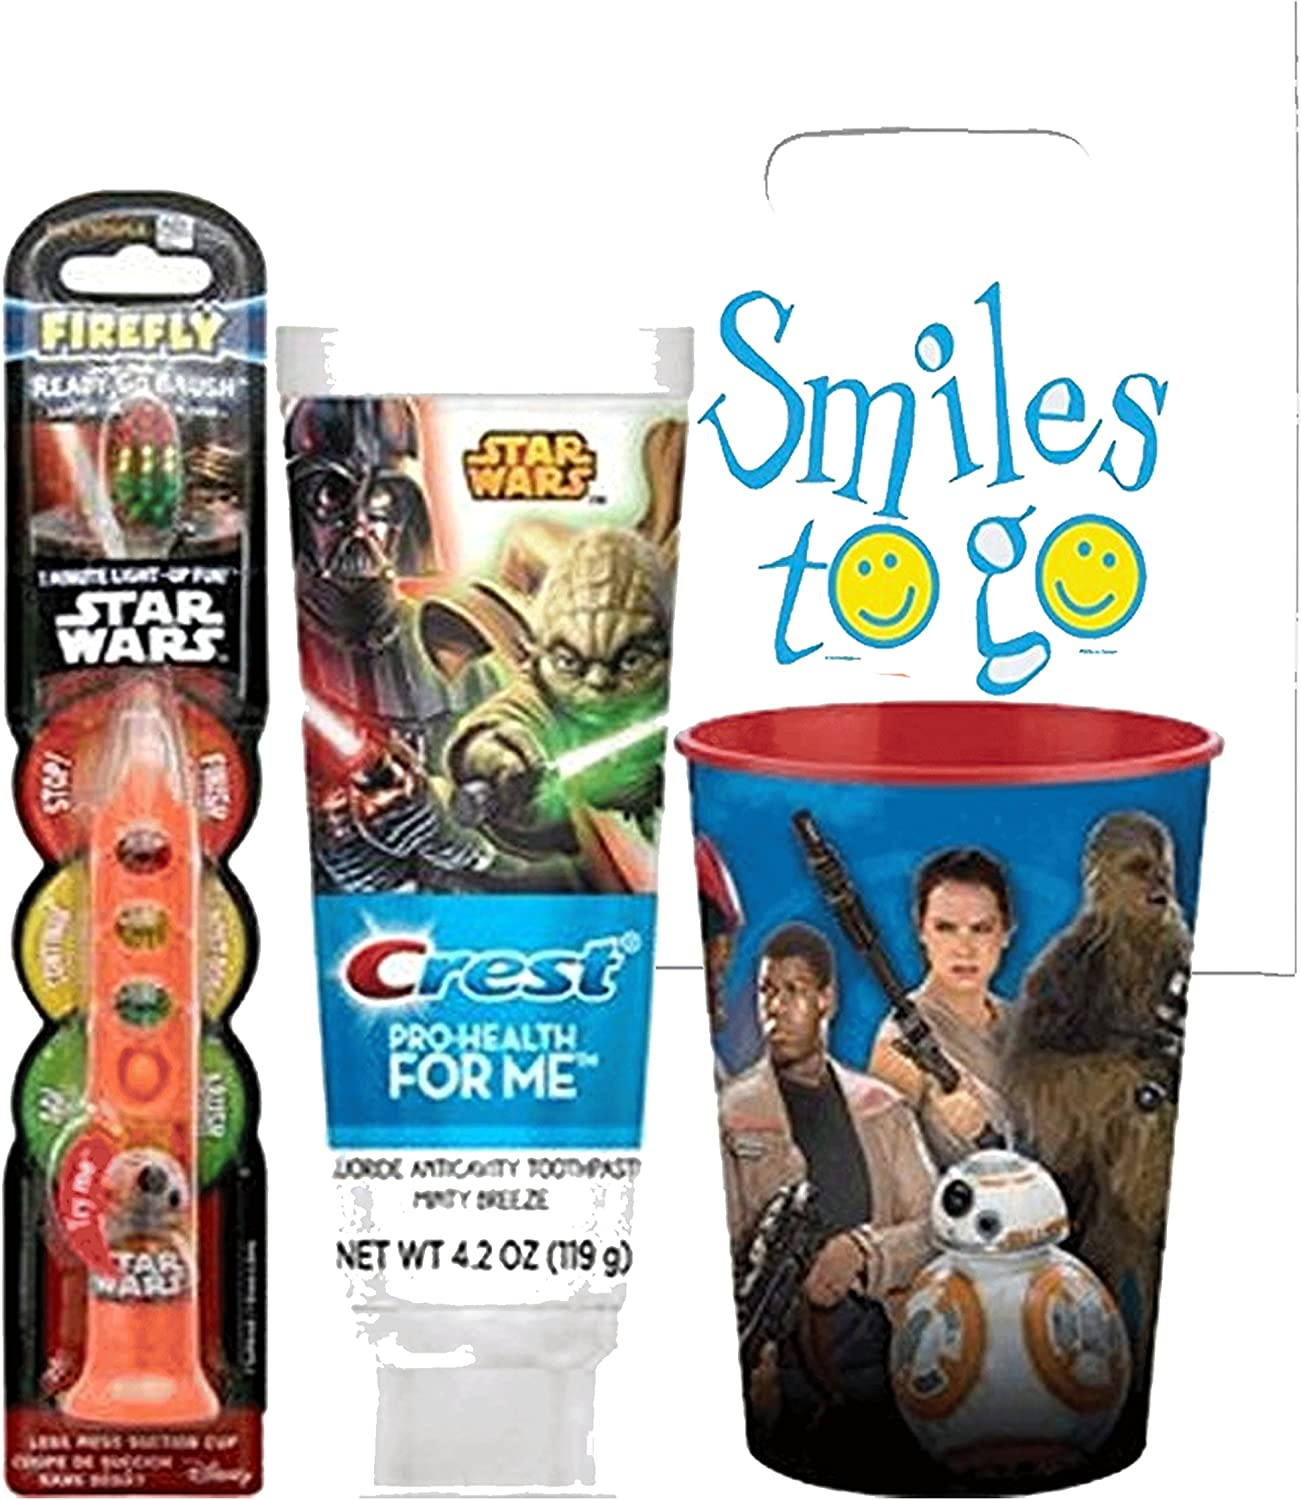 "Star Wars BB-8 3pc Bright Smile Oral Hygiene Set! (1) Star Wars Light up Toothbrush (1) Minty Breeze Toothpaste & Mouthwash Rinse Cup! ""Remember to Brush"" Visual Aid!"